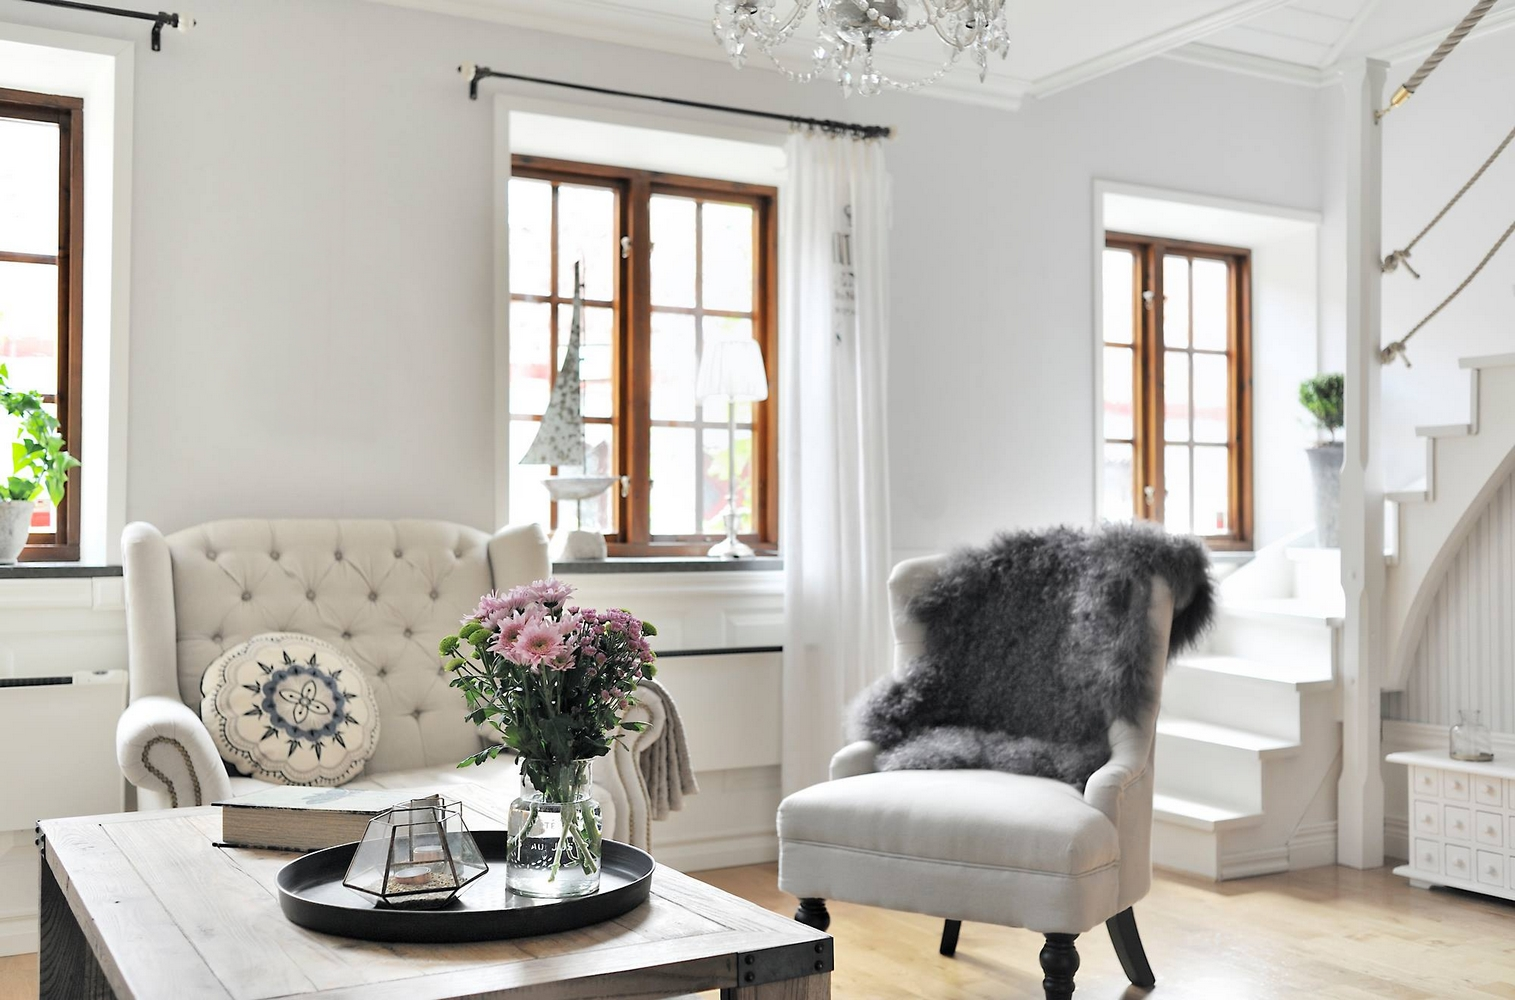 The lovely deco une maison au style campagne chic - Maison style campagne ...